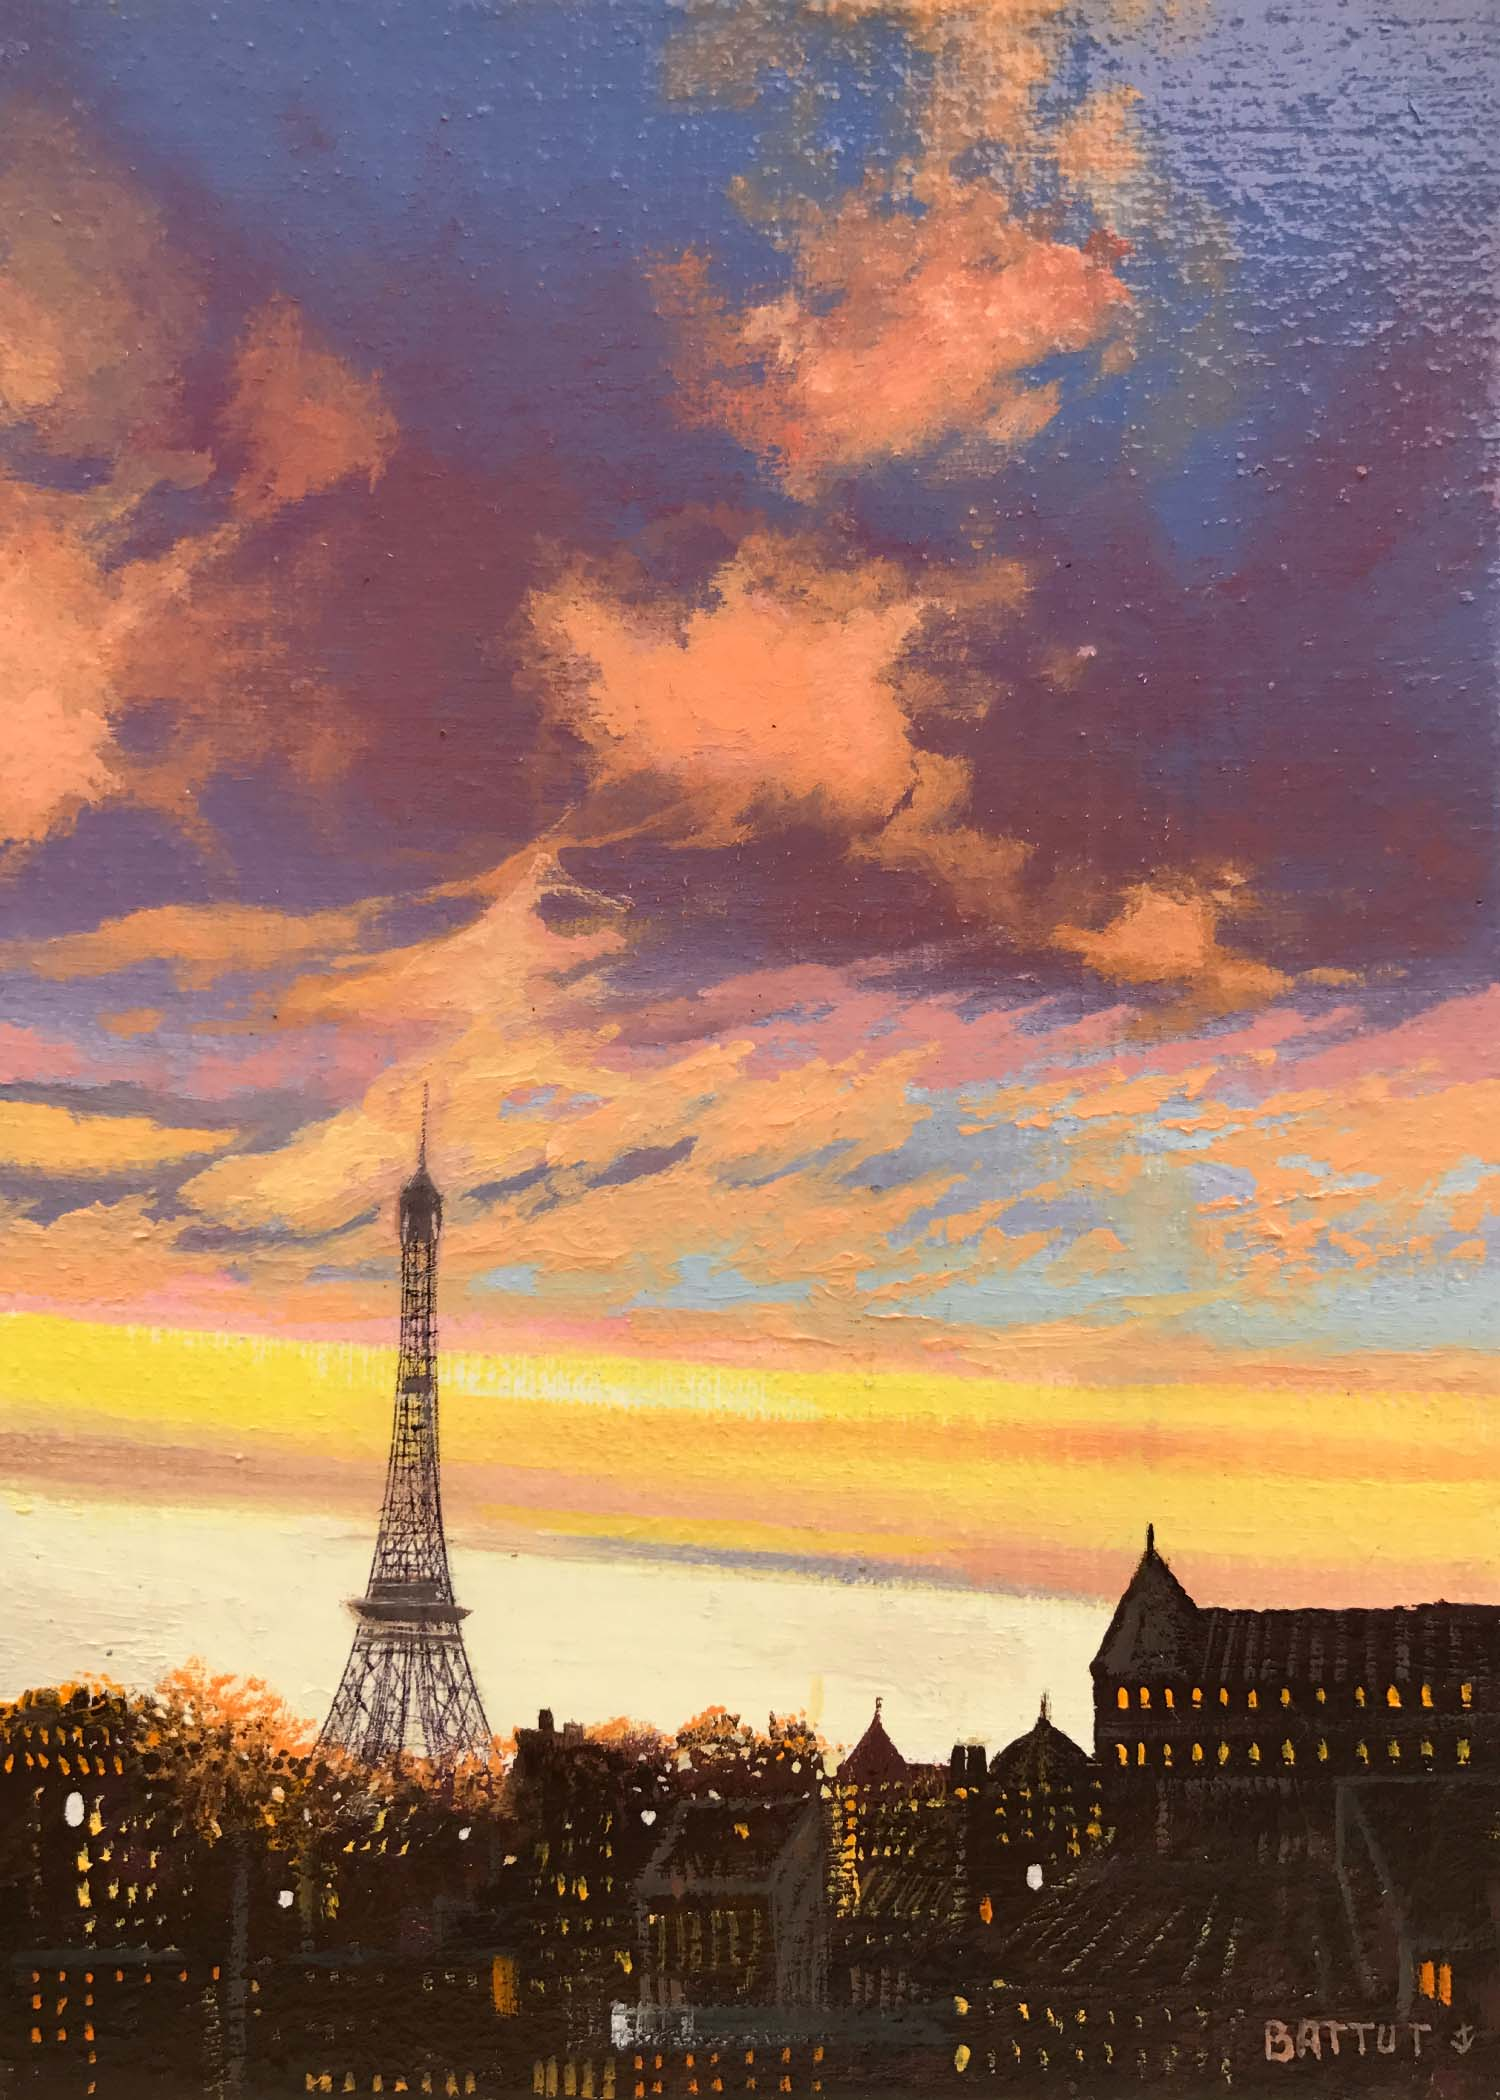 Battut #221-Paris tour Eiffel- 5 x 7-unframed.jpg